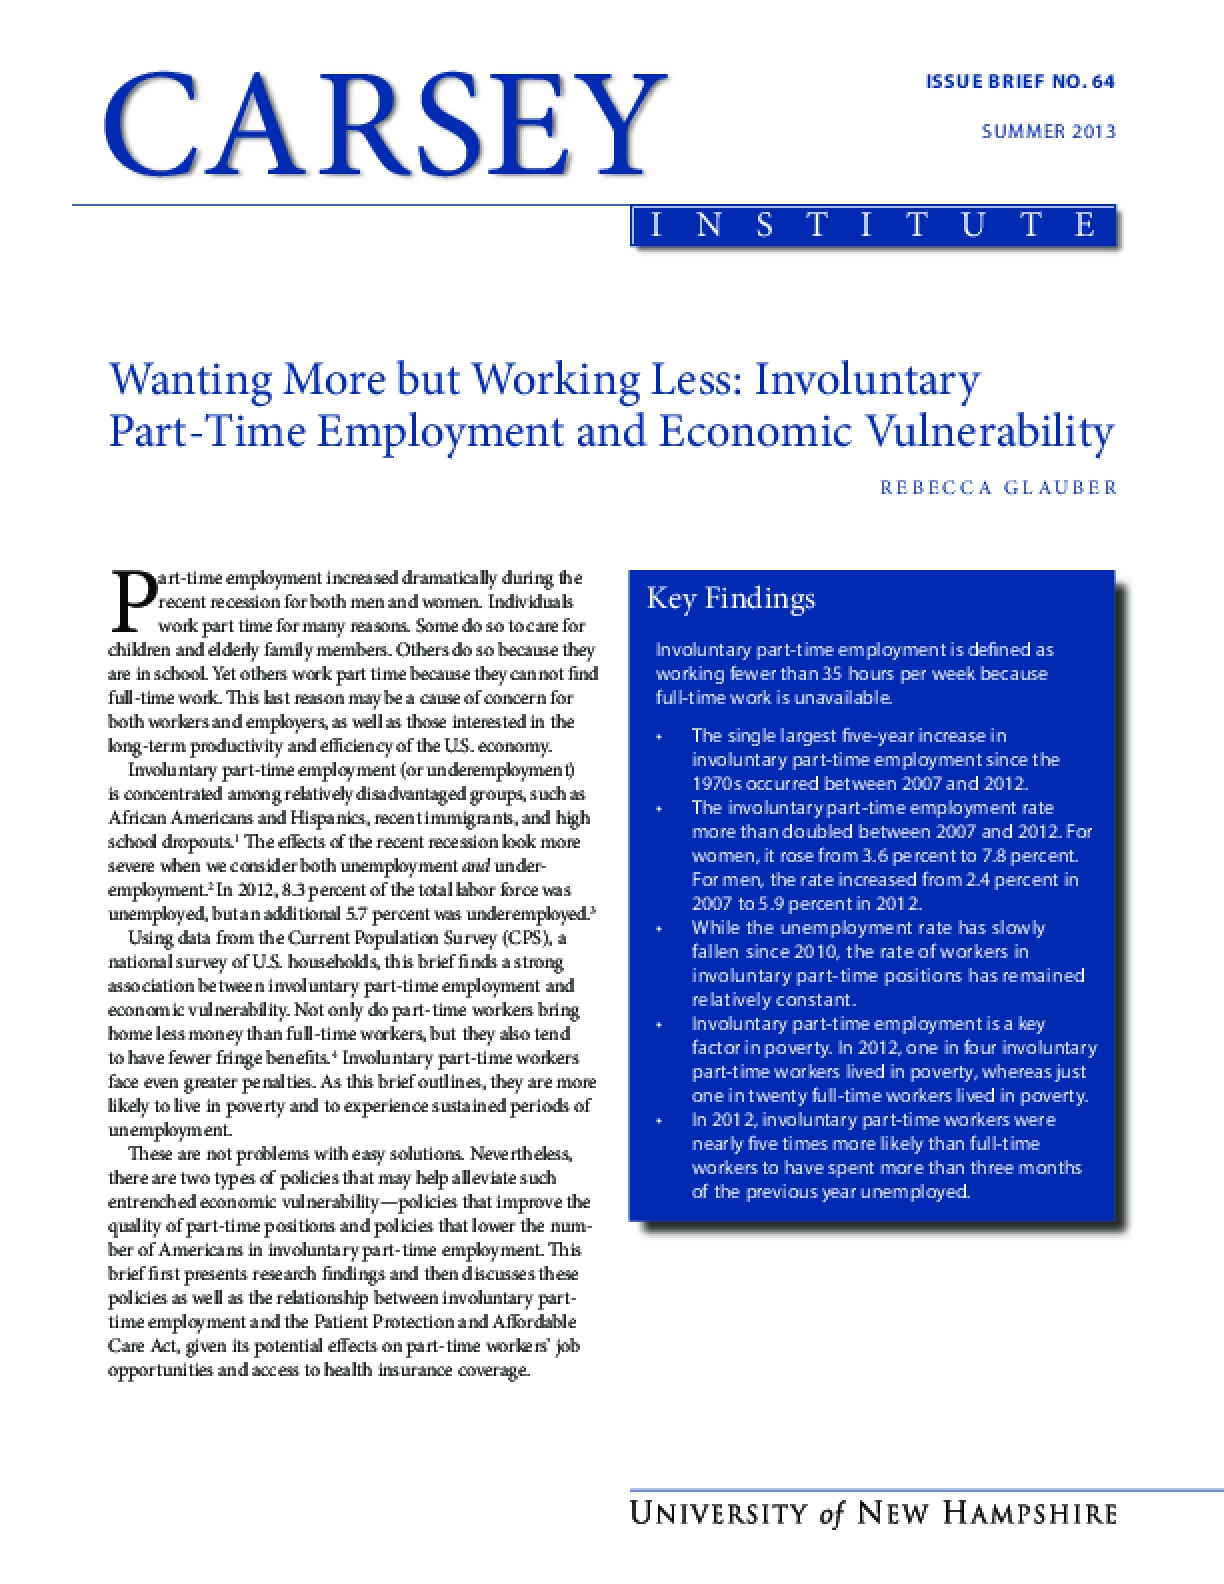 Wanting More but Working Less: Involuntary Part-Time Employment and Economic Vulnerability